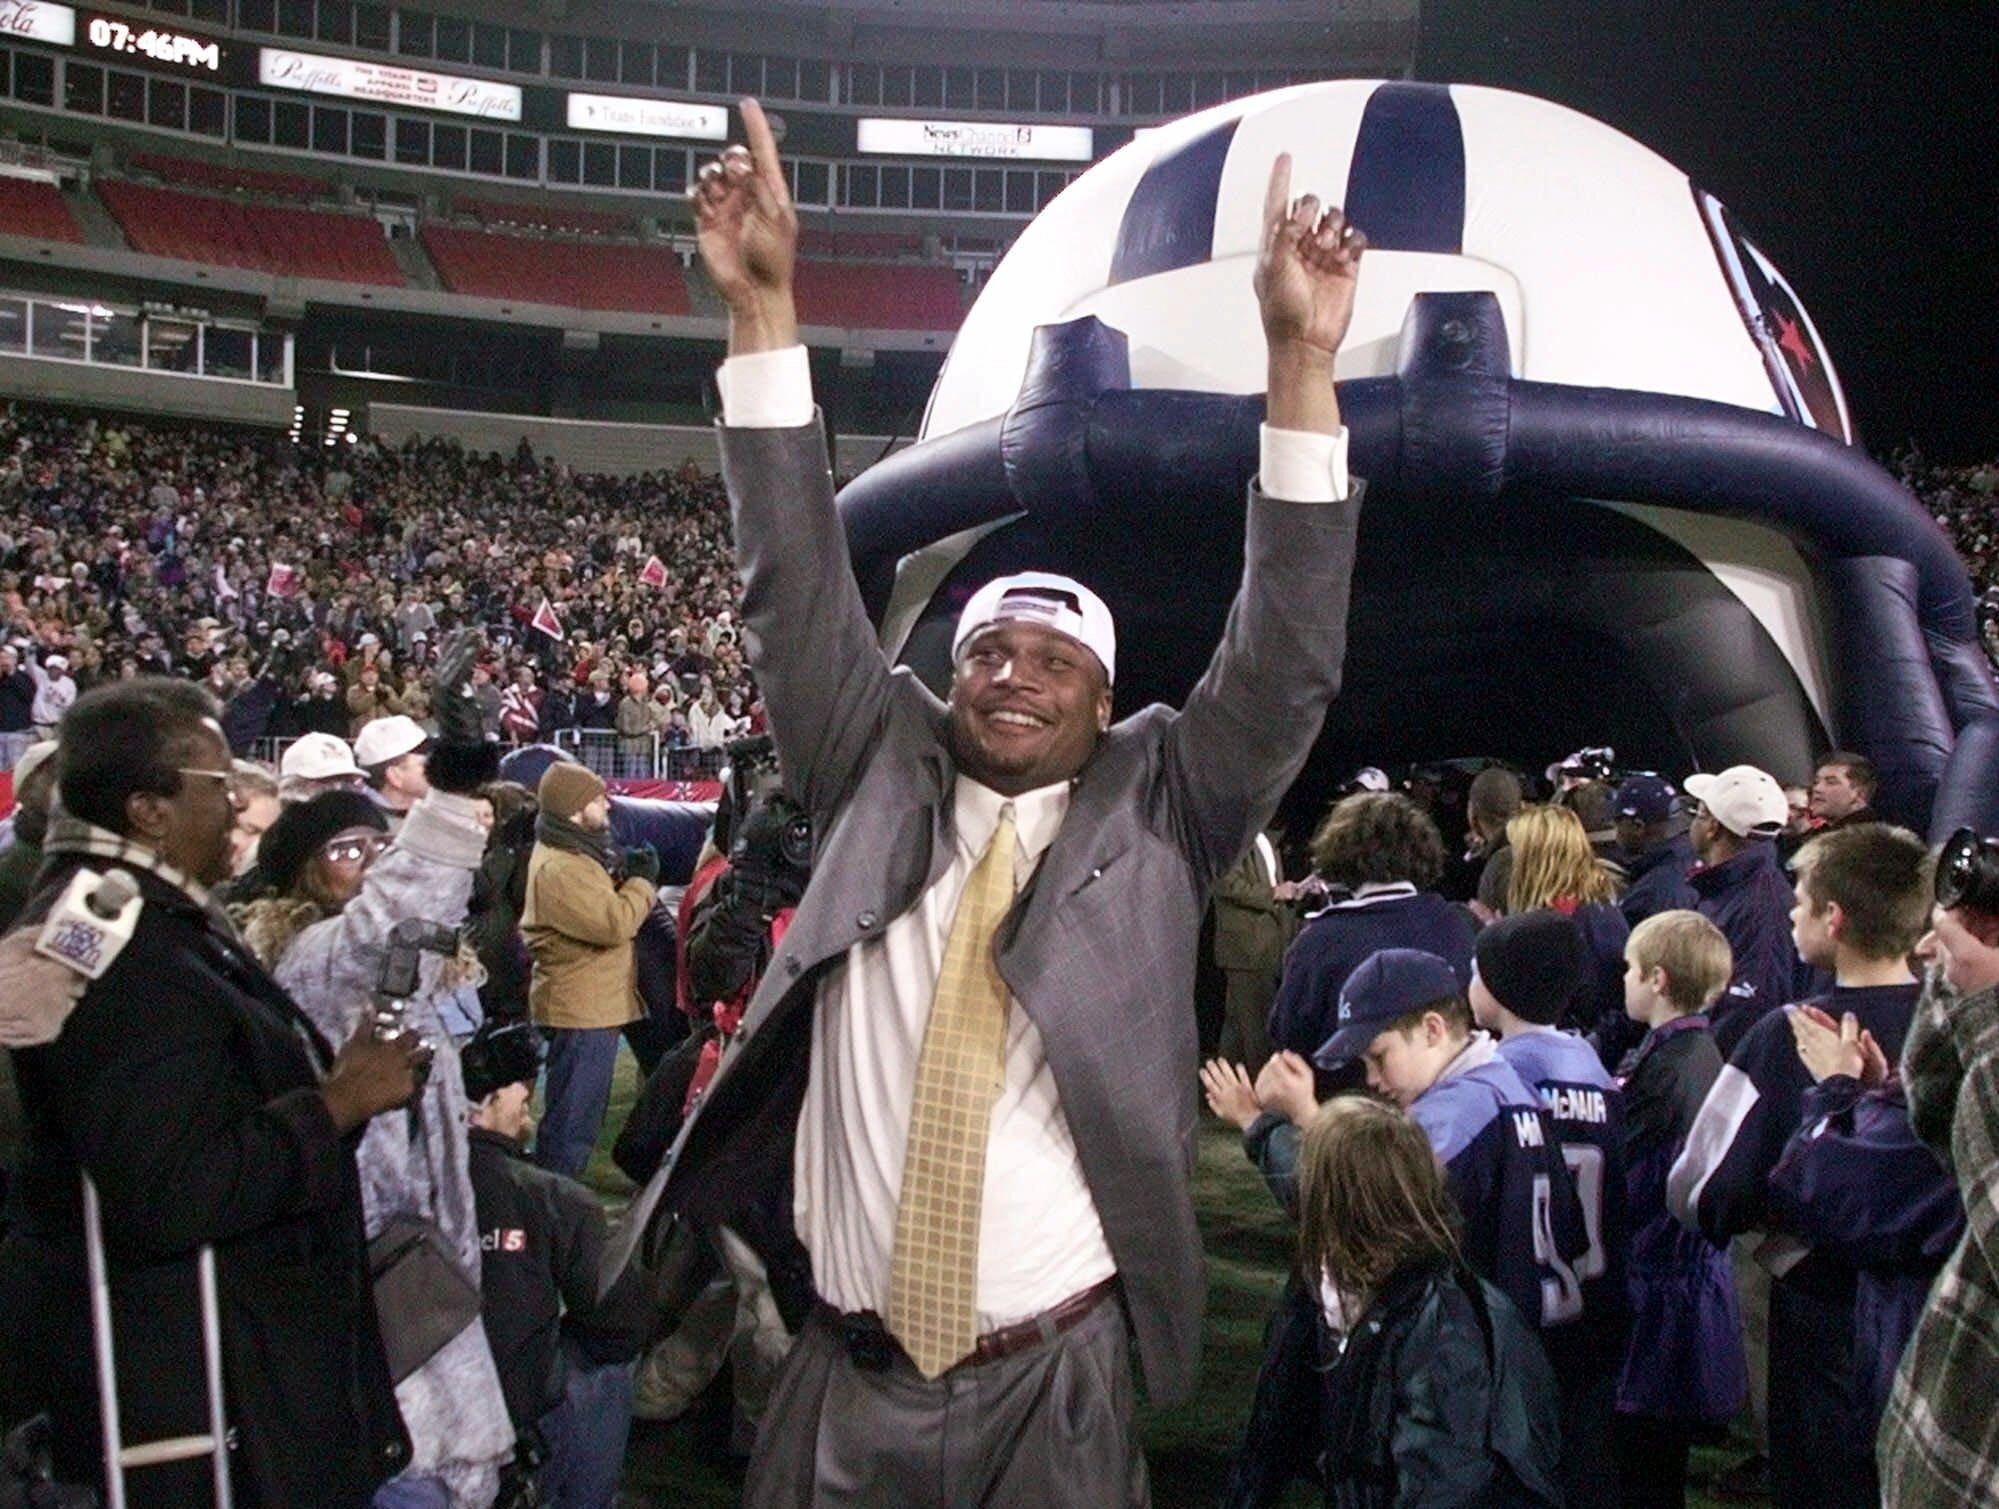 Tennessee Titans quarterback Steve McNair reacts to the roar of 43,000 Titans fans Jan. 23, 2000 as the team returned to Adelphia Coliseum in Nashville after defeating the Jacksonville Jaguars 33-14 to win the AFC championship.